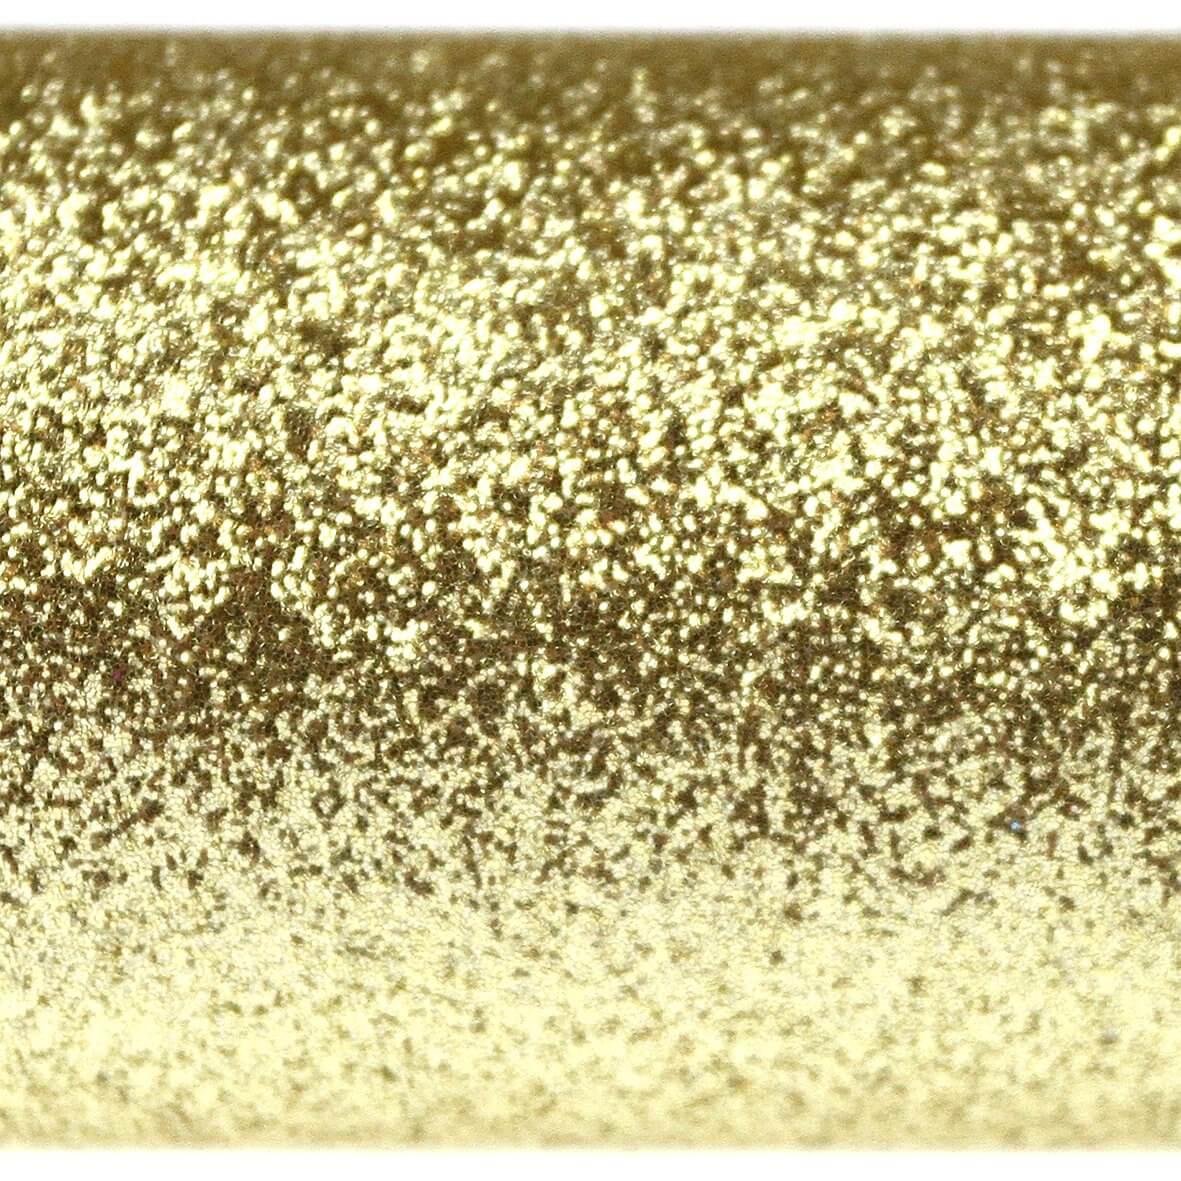 Glitter Gold: 'Glitz' Light Gold Glitter Paper